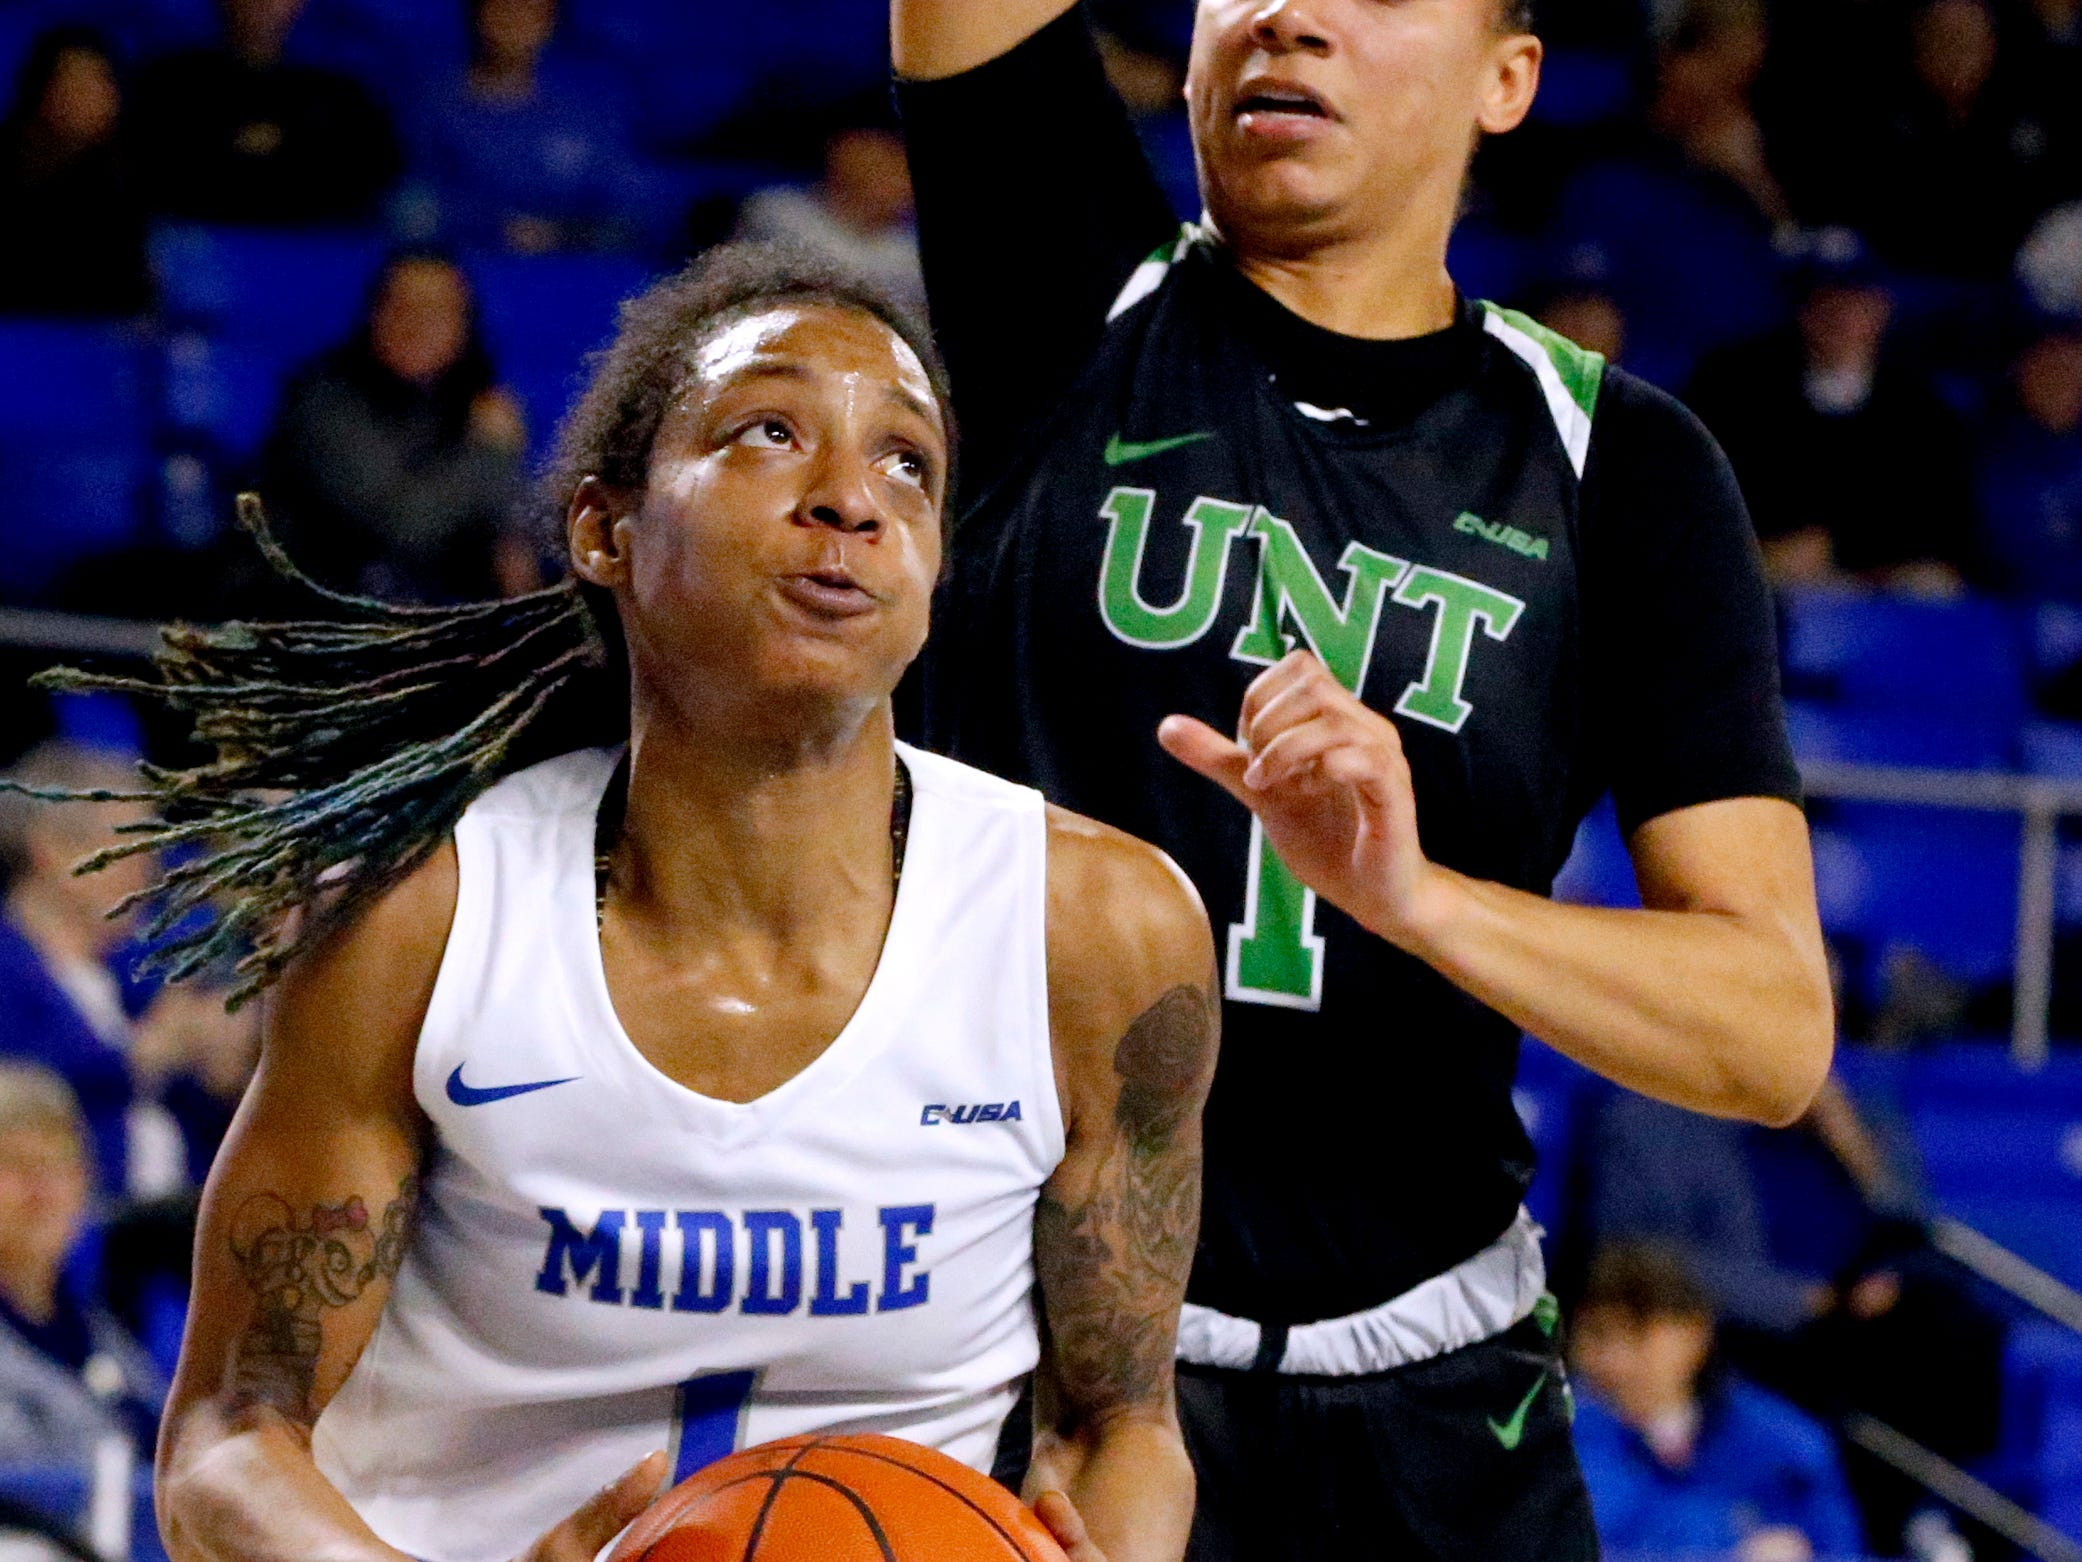 MTSU's guard A'Queen Hayes (1) goes to shoot the all as North Texas' guard Callie Owens (1) defends her on Saturday Jan. 26, 2019.